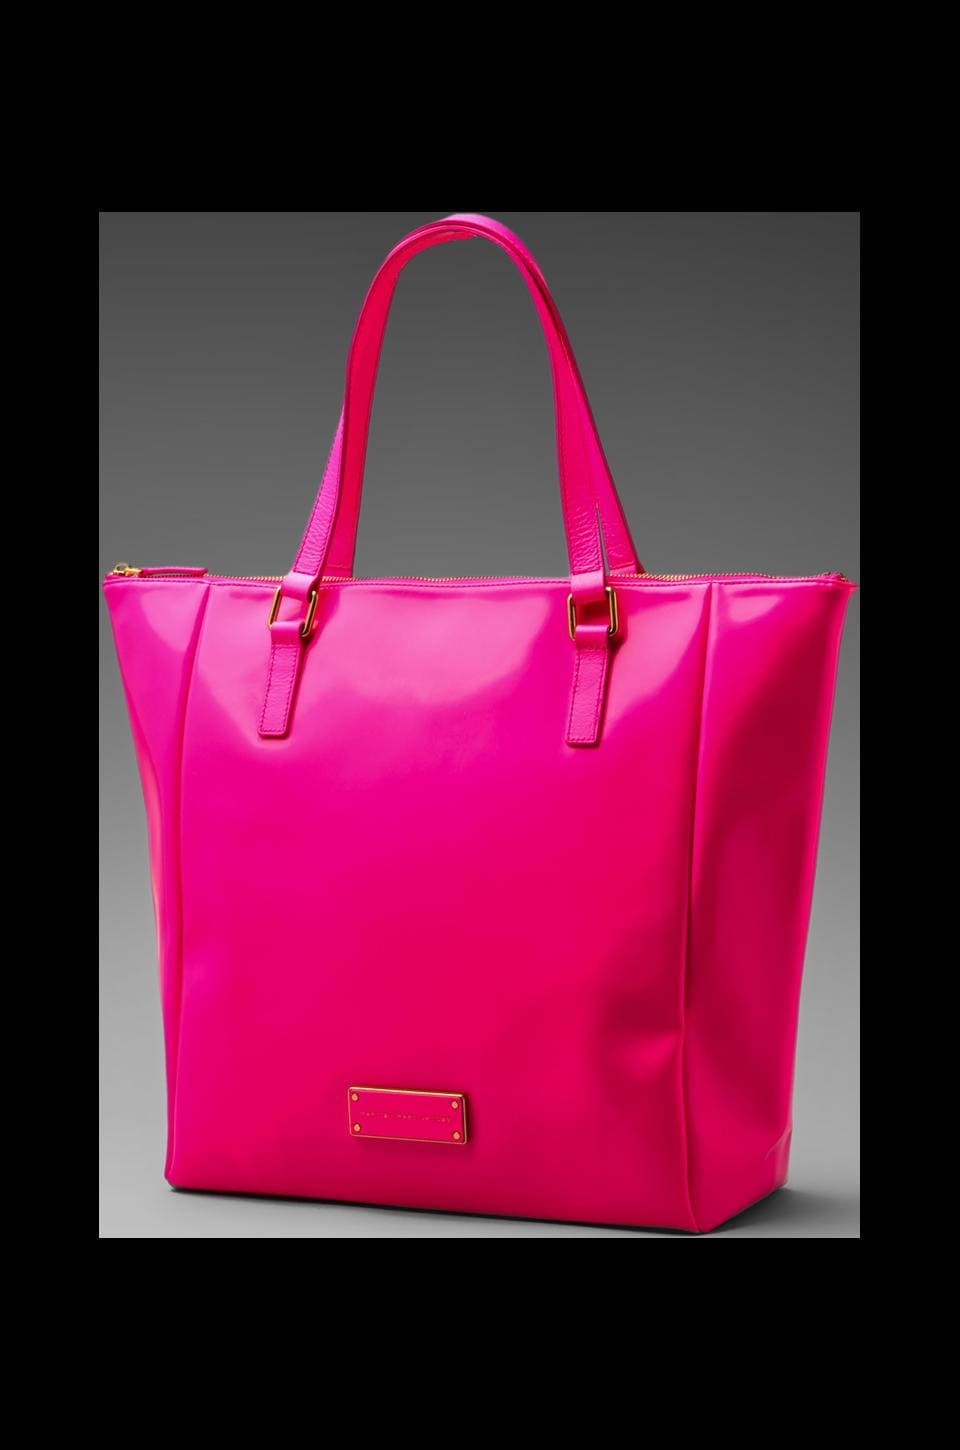 Marc by Marc Jacobs Take Me Tote in Knockout Pink